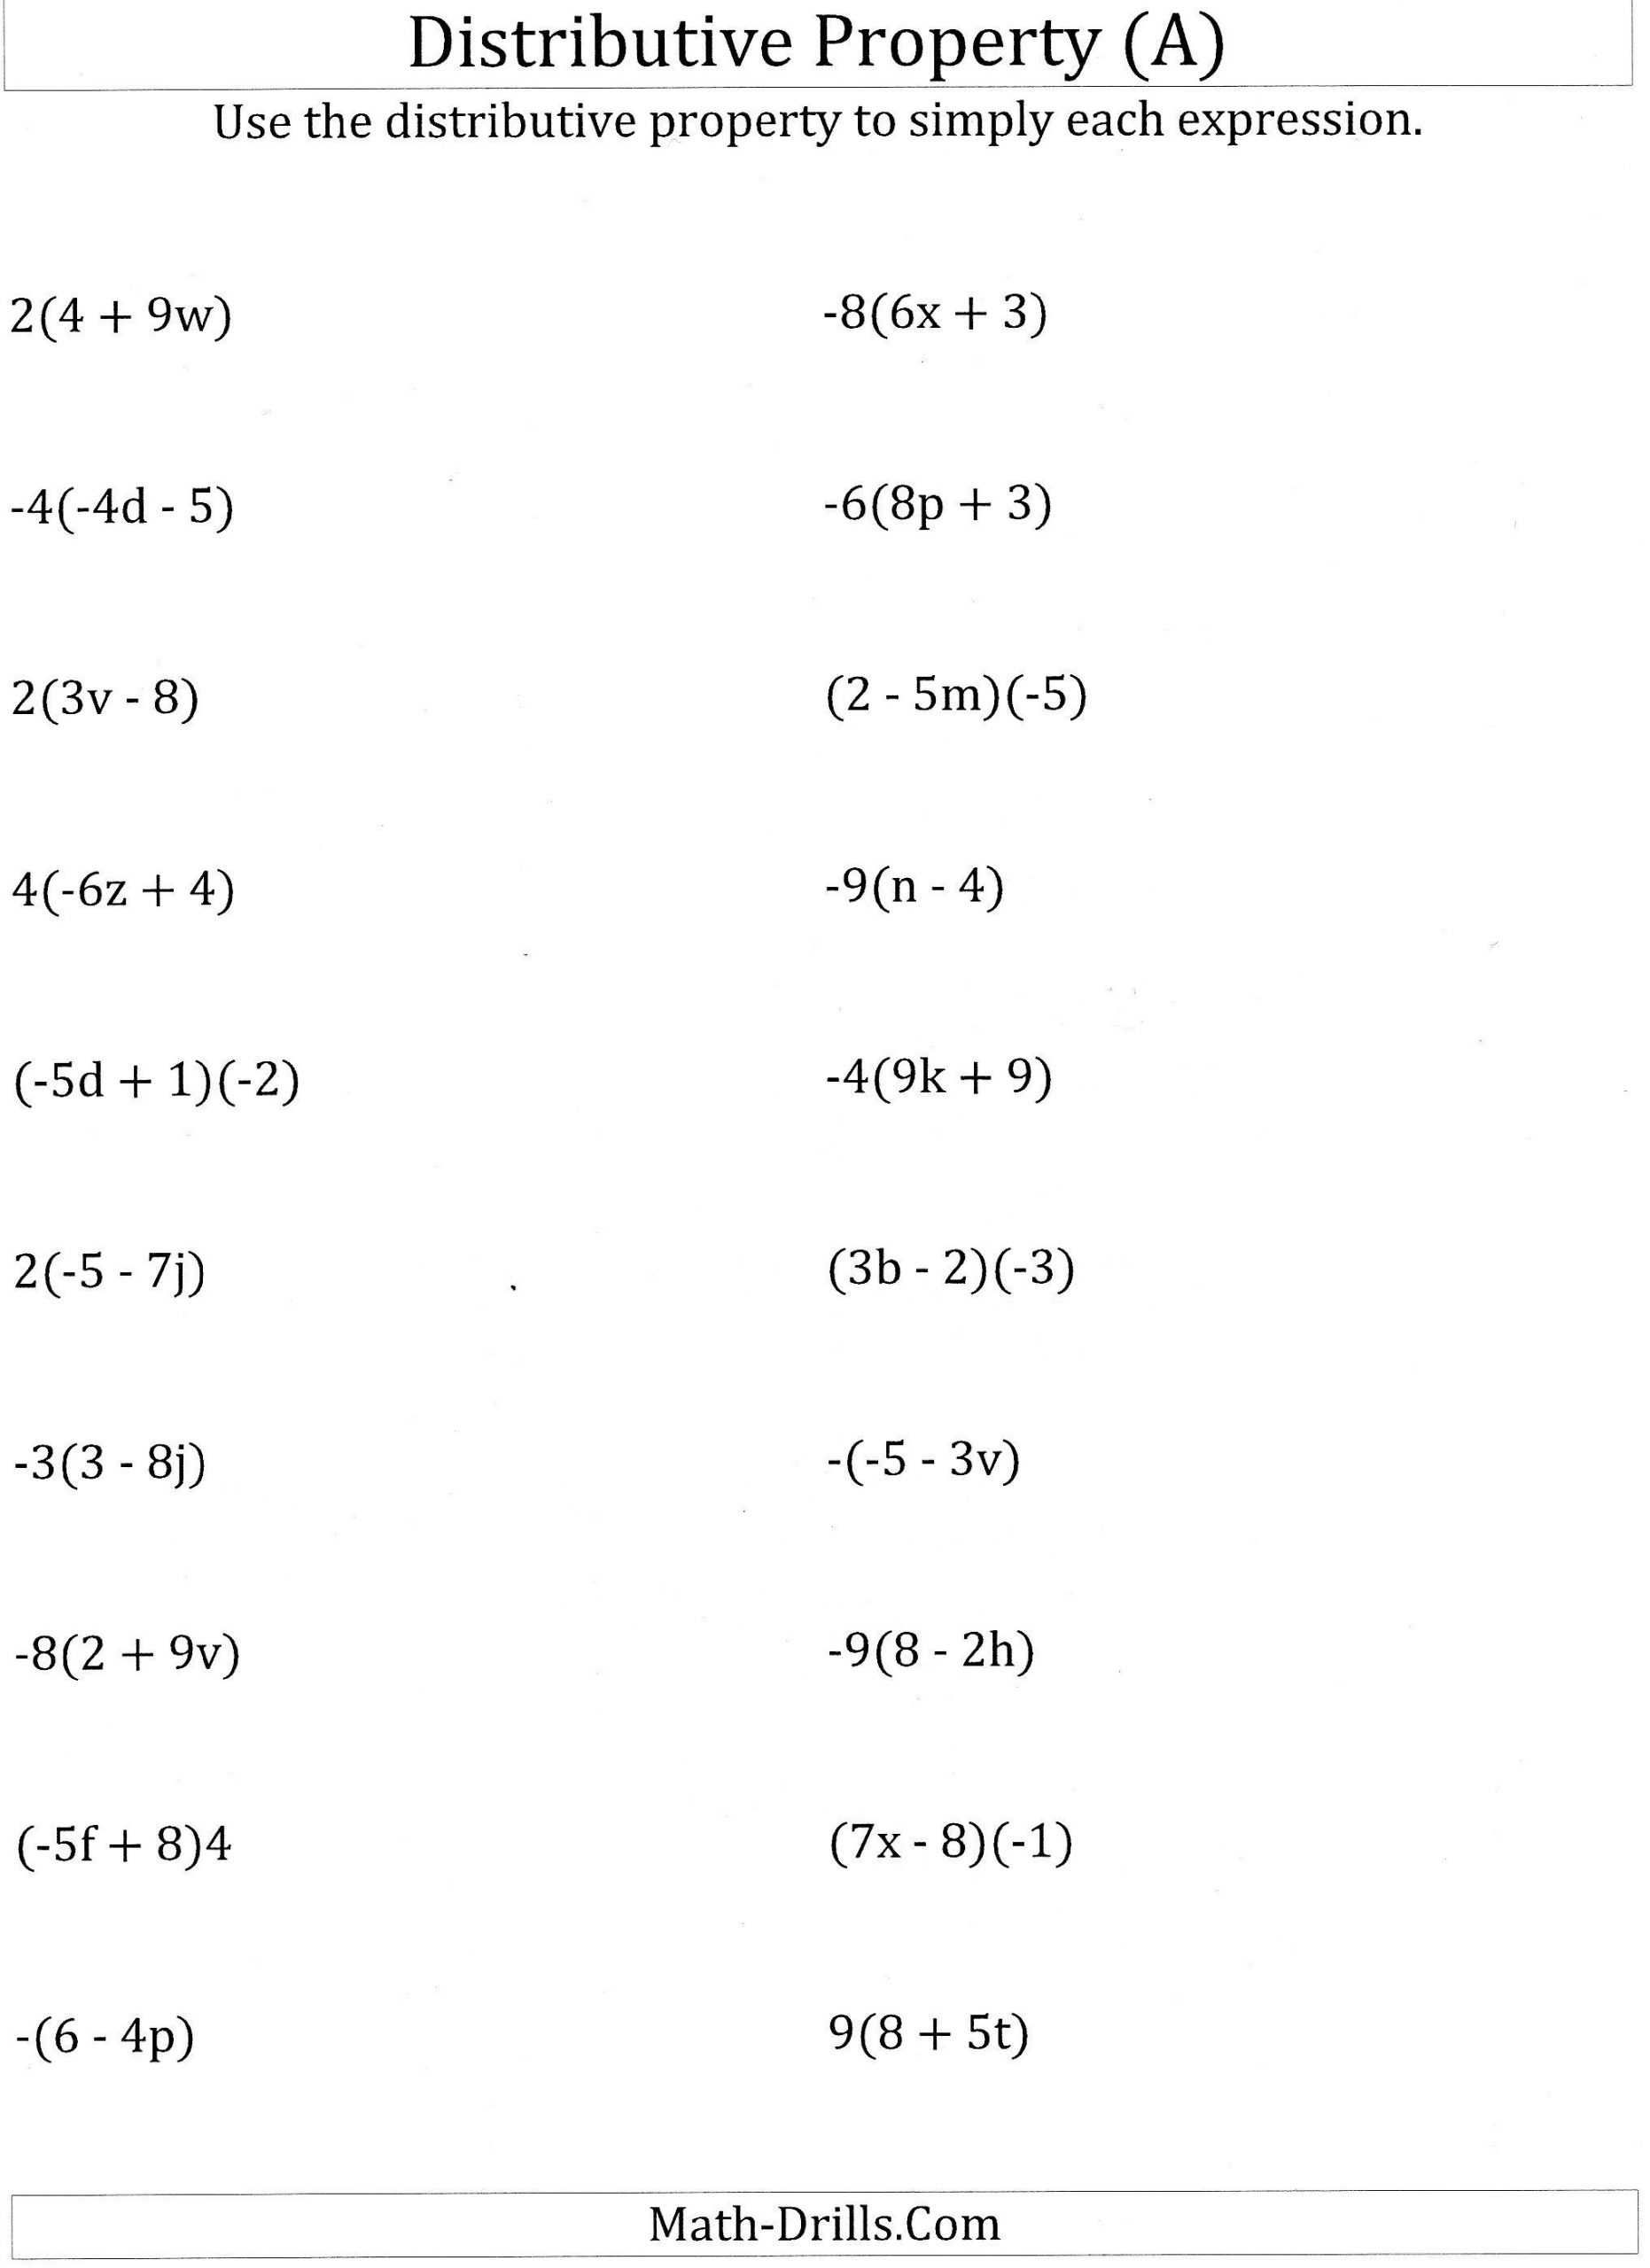 Distributive Property 6th Grade Worksheet Worksheet Math Worksheets Distributive Property